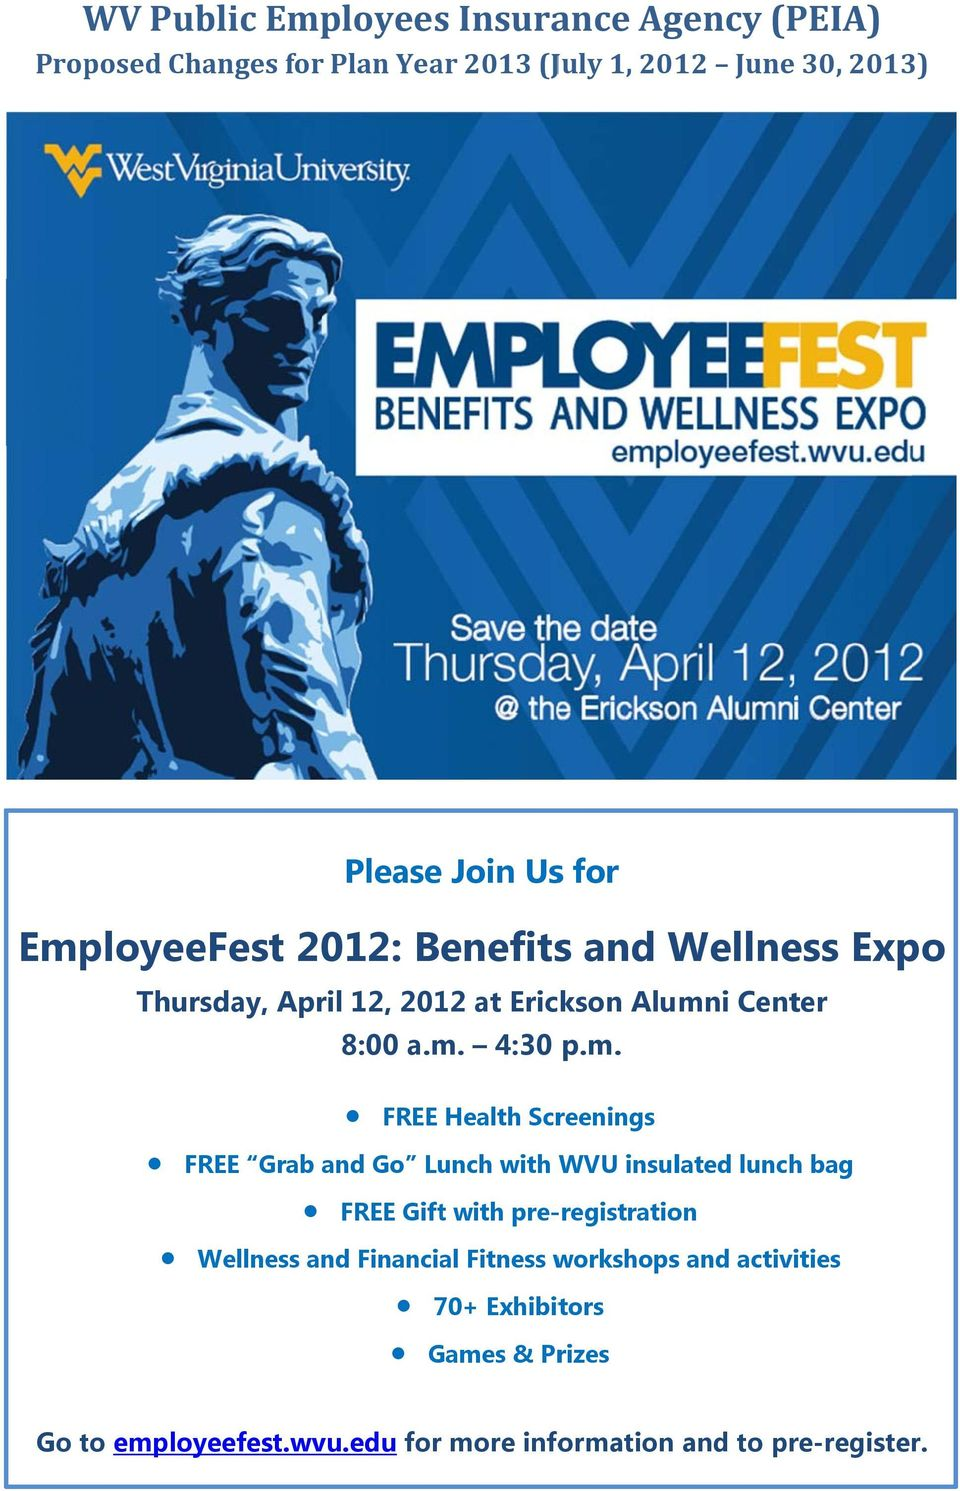 loyeeFest 2012: Benefits and Wellness Expo Thursday, April 12, 2012 at Erickson Alumn